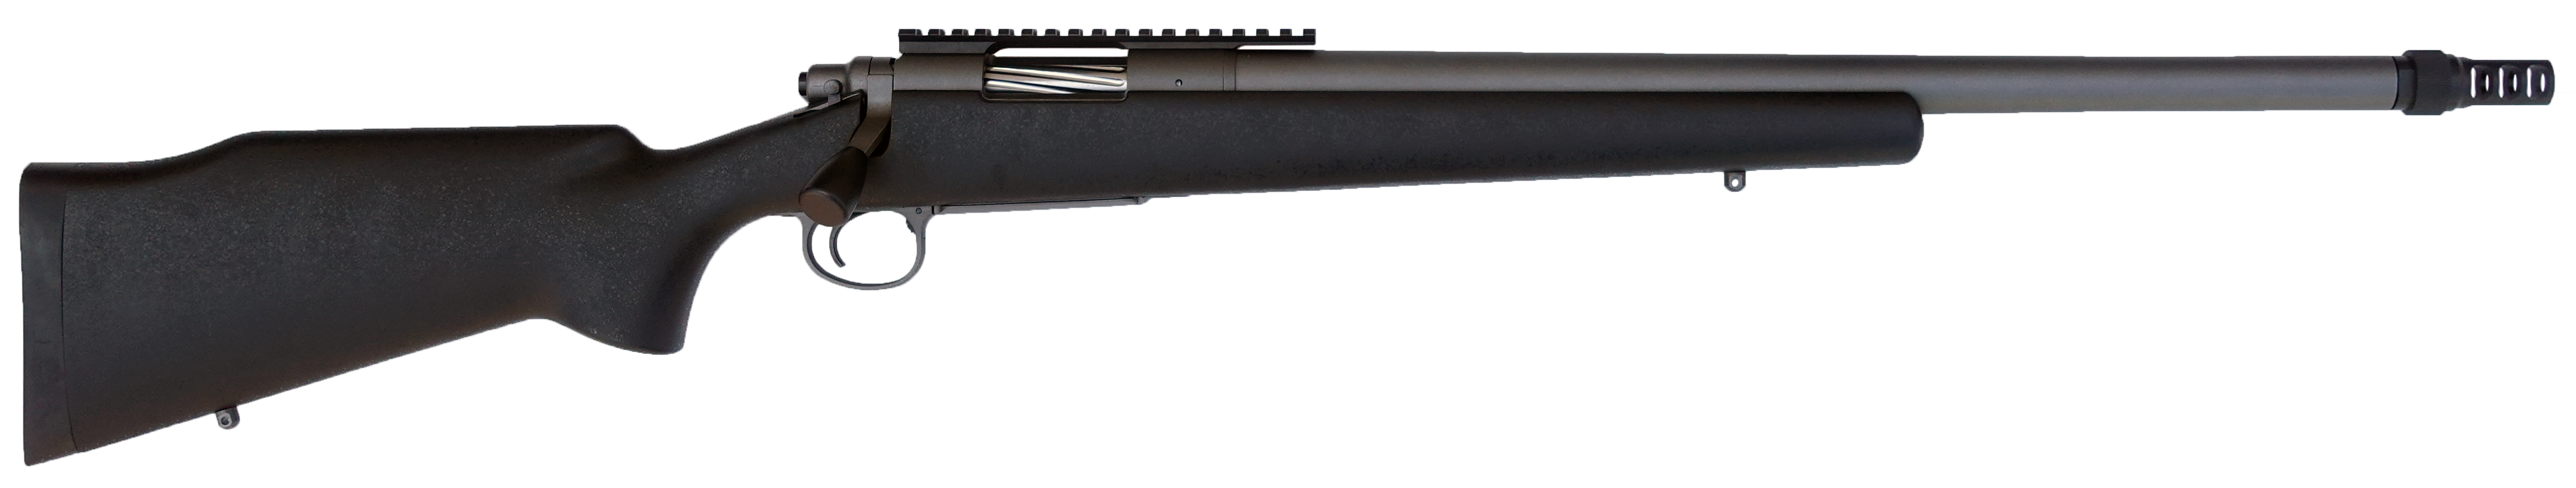 """M40A1 20inch """" Tactical Ti """" カートリッジタイプ Ver.2"""